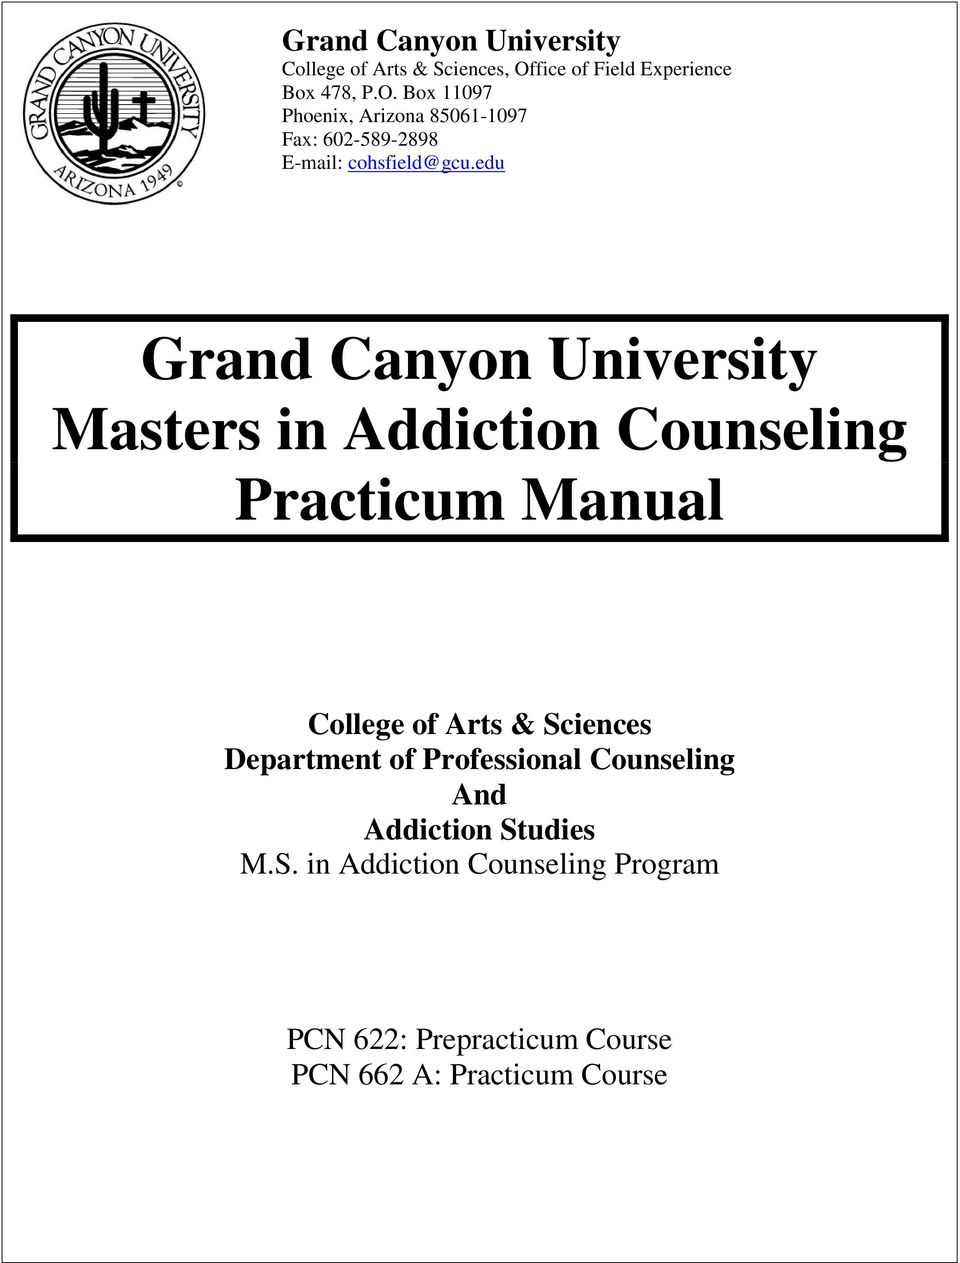 Grand Canyon University Masters In Addiction Counseling Practicum